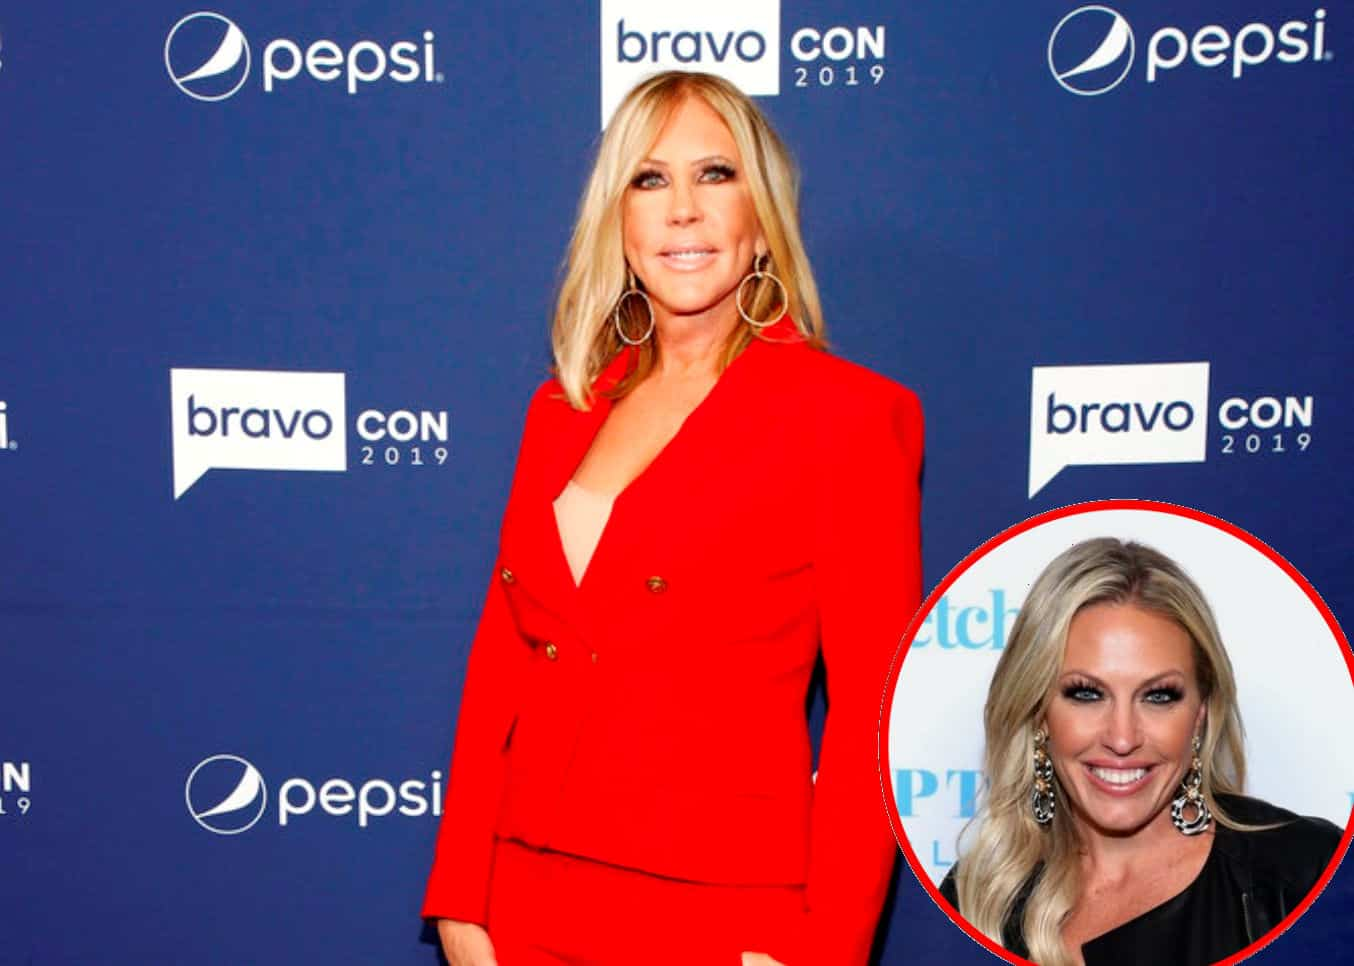 Did Vicki Gunvalson Quit or Get Fired From RHOC? Braunwyn Burke Claims She is Not on Her Cast as Vicki States She's Retiring 'Pretty Soon'